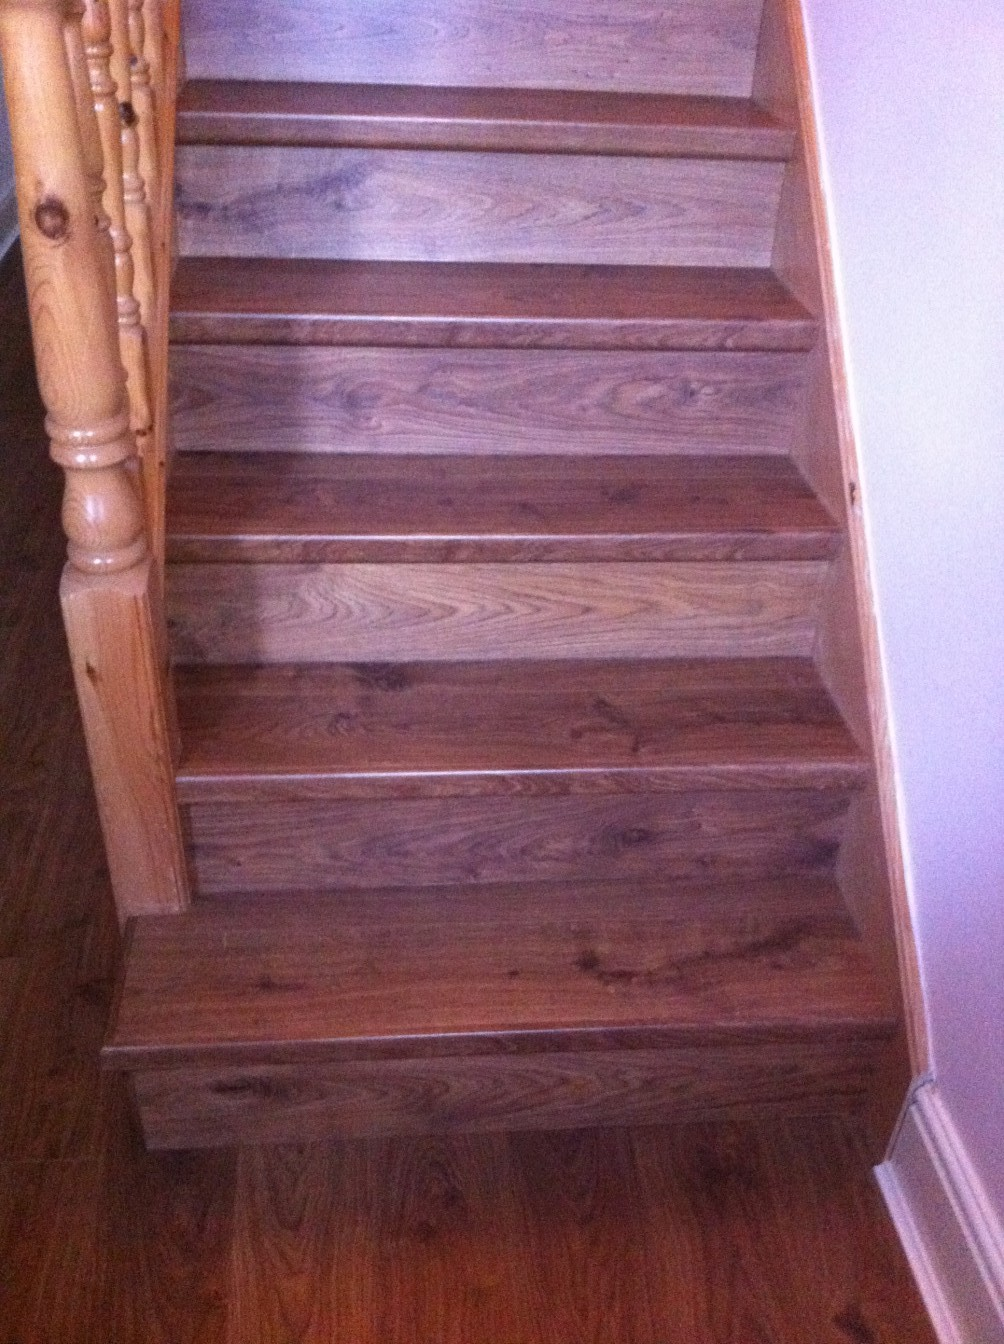 Pale pink staircase with wooden stairs and flooring